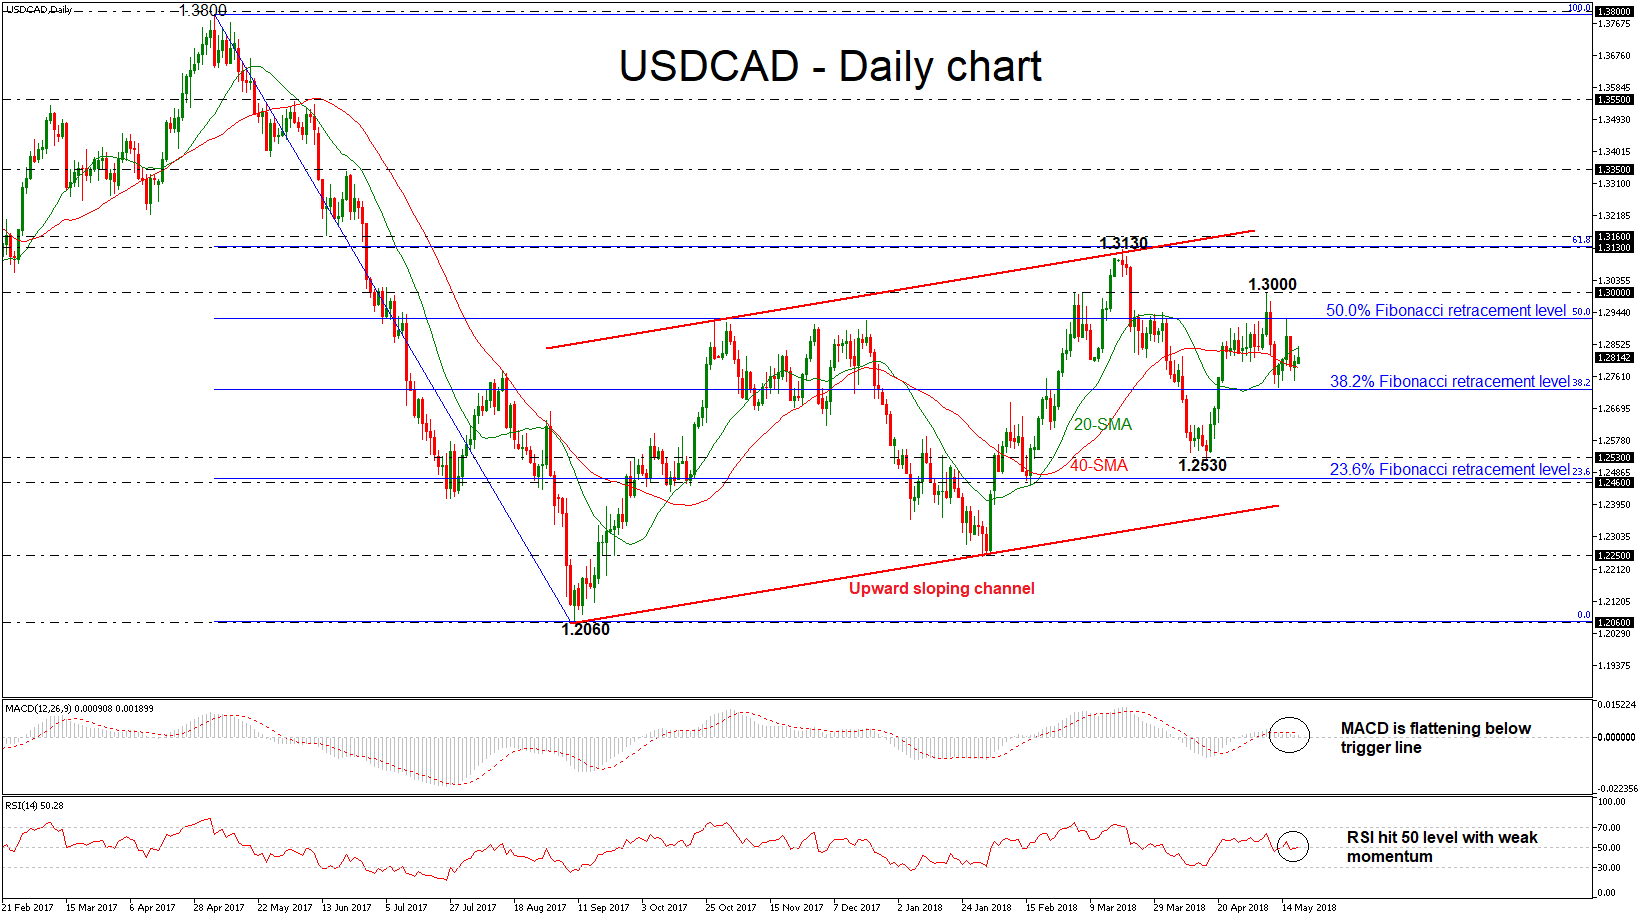 USD/CAD 18 MAY 2018 | EconAlerts